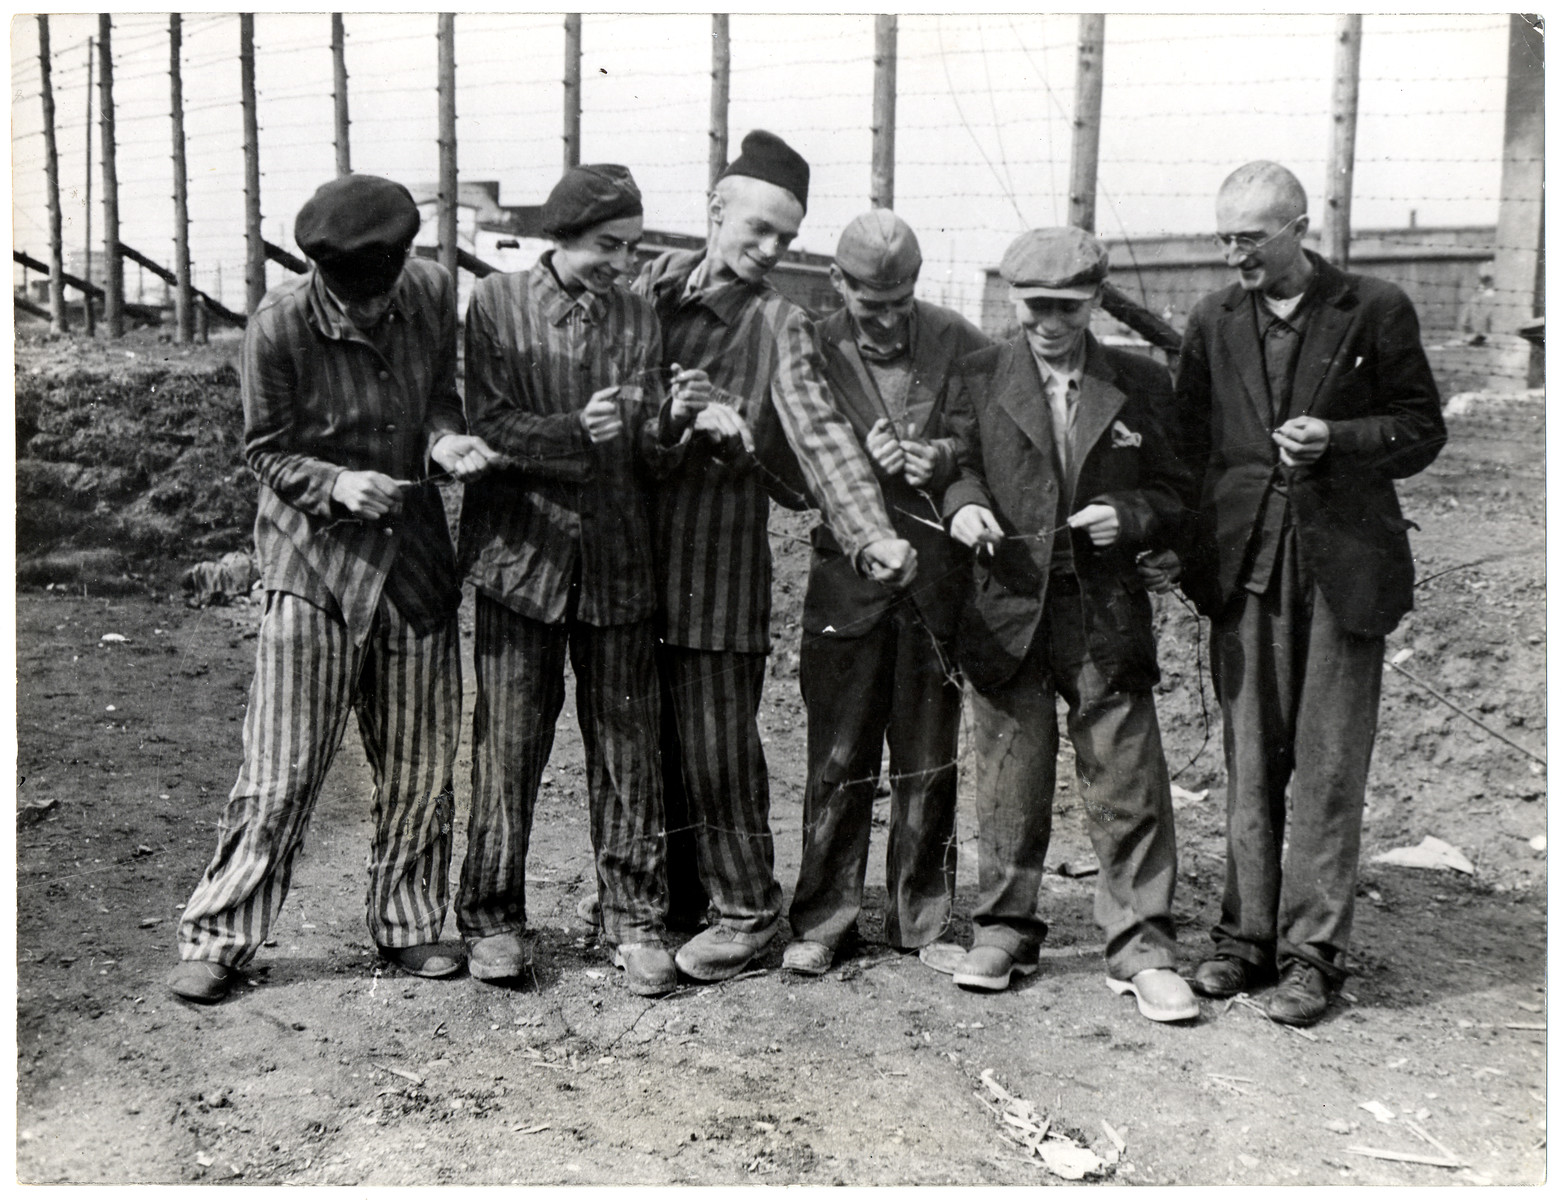 "Survivors of the Hanover concentration camp destroy the barbed wire that had held them captive.  Original caption reads; ""Former Jewish and Polish prisoners of the Nazis laugh at the barbed wire which for years held them captive at the Nazi Hanover-Harlen concentration camp near Hanover, Germany, captured by troops of the Ninth U.S. Army April 10, 1945. Hanover is 155 miles from Berlin."""